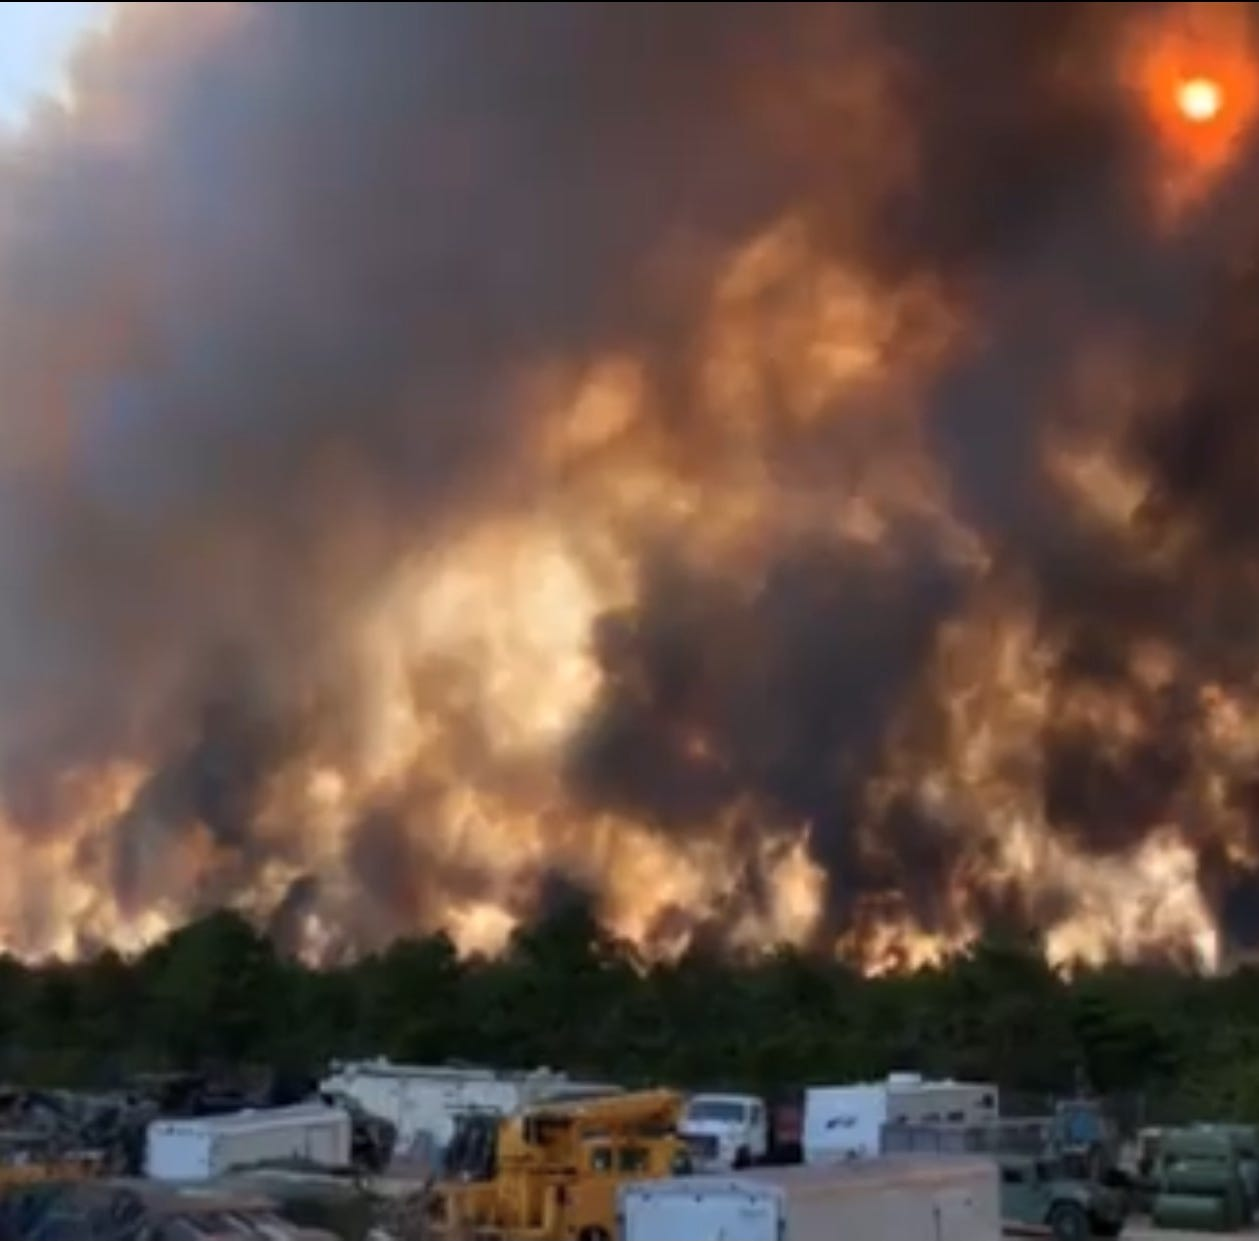 Route 72 closed in Barnegat due to major forest fire in Pine Barrens